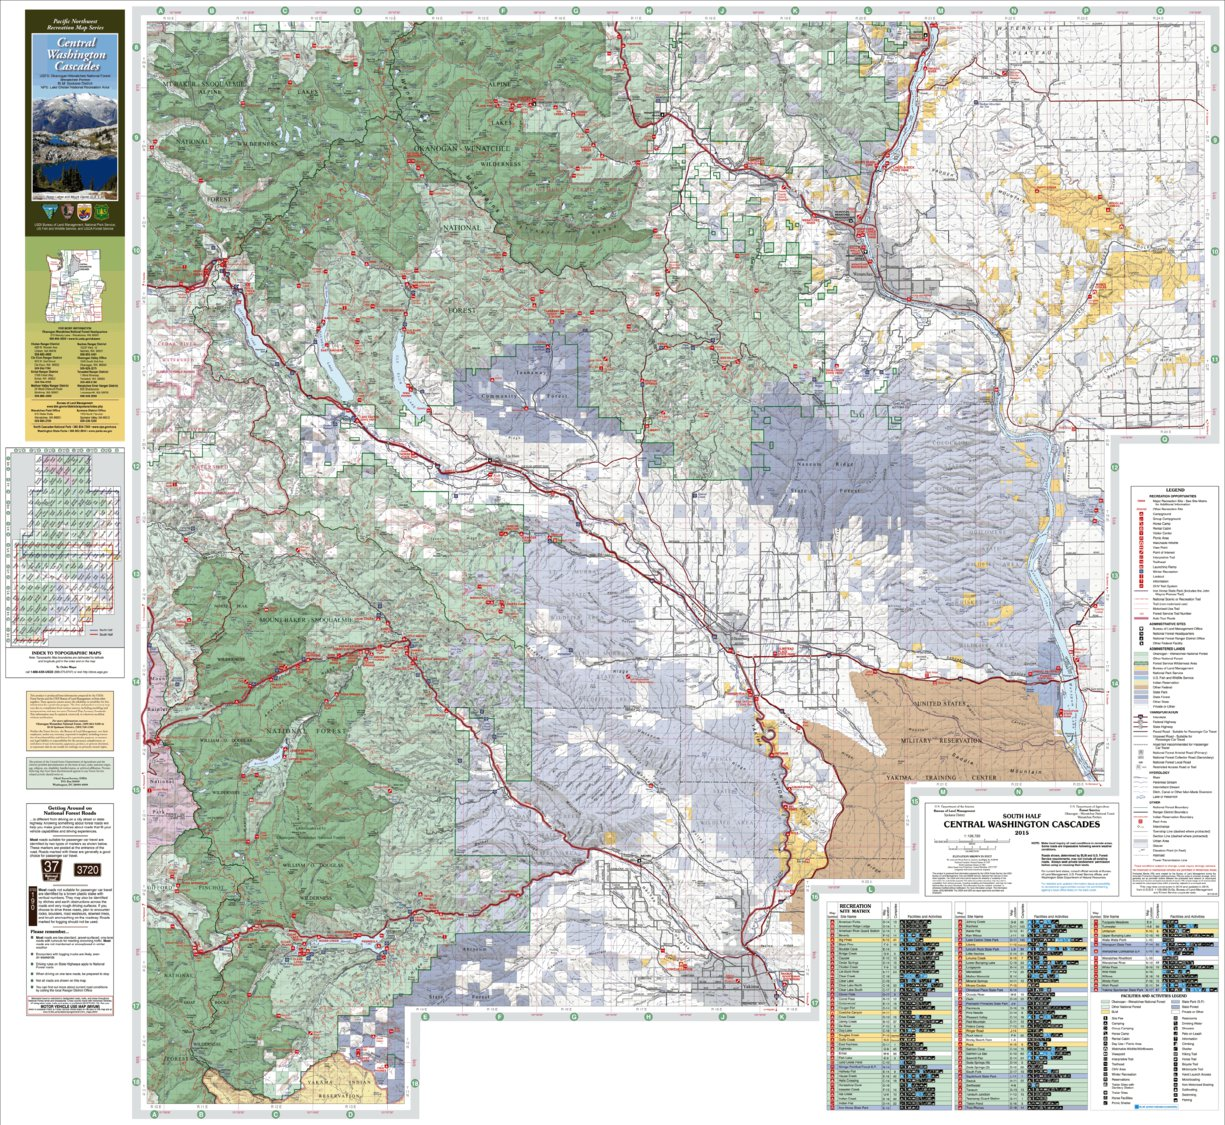 Central Washington Cascades Recreation Map South - US Forest Service on